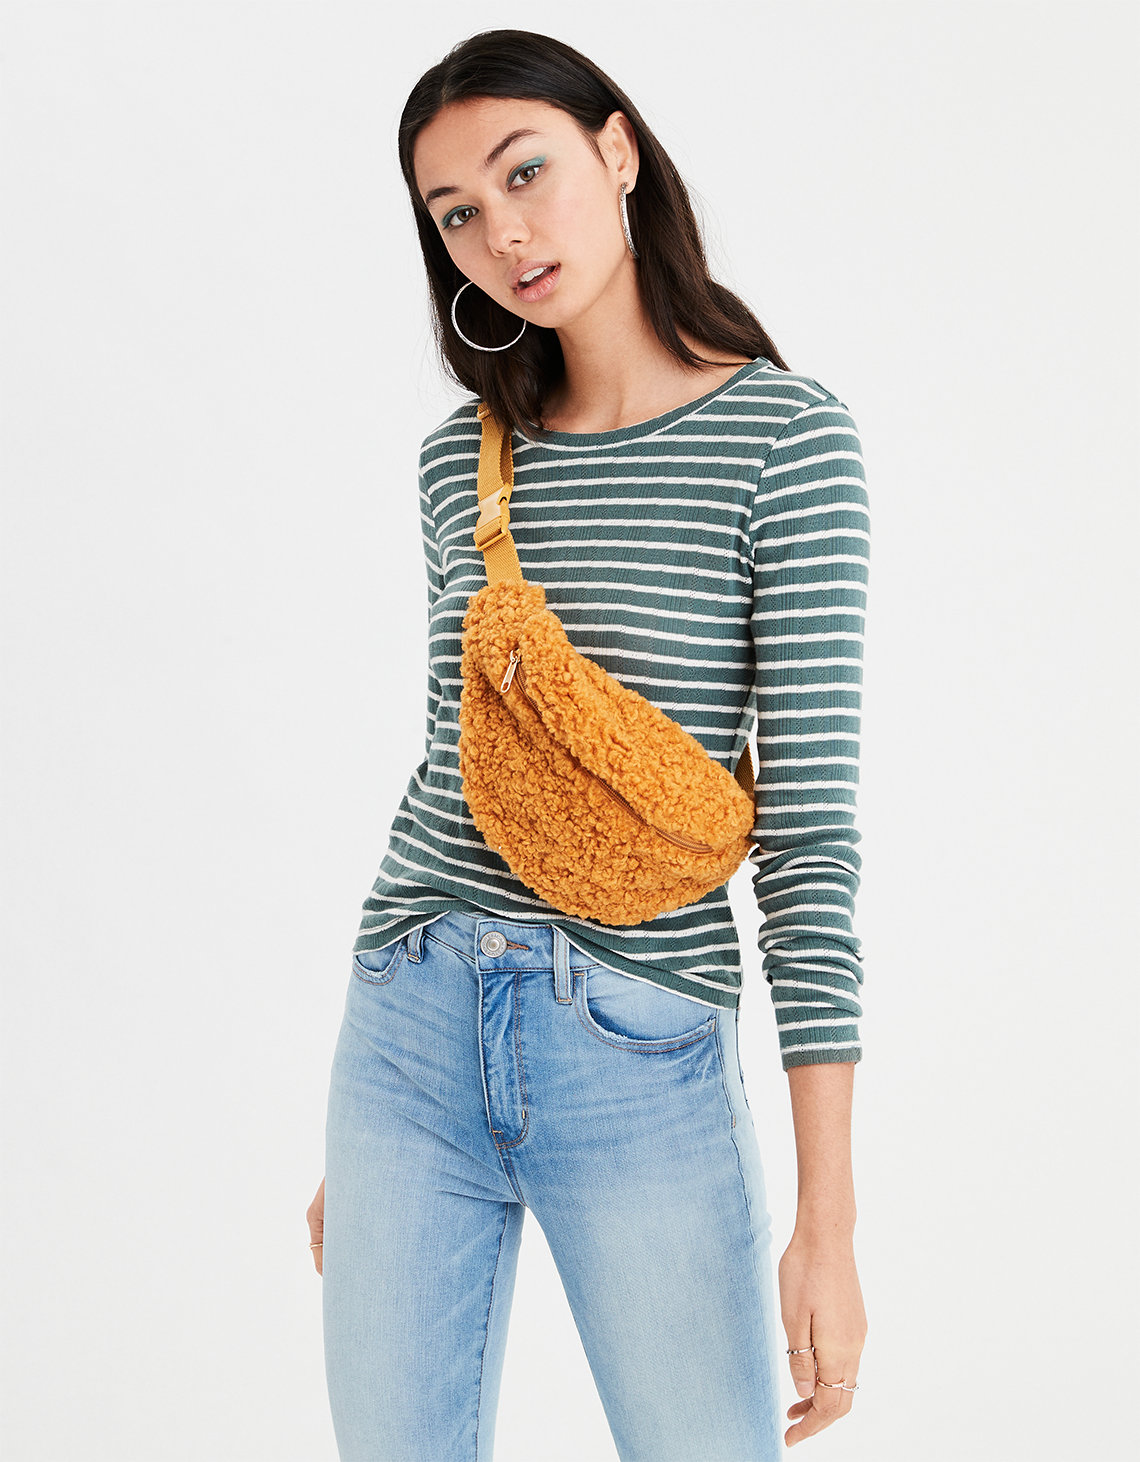 Show off those great jeans during the American Eagle Outfitters October 2018 promo :: Effortlessly with Roxy